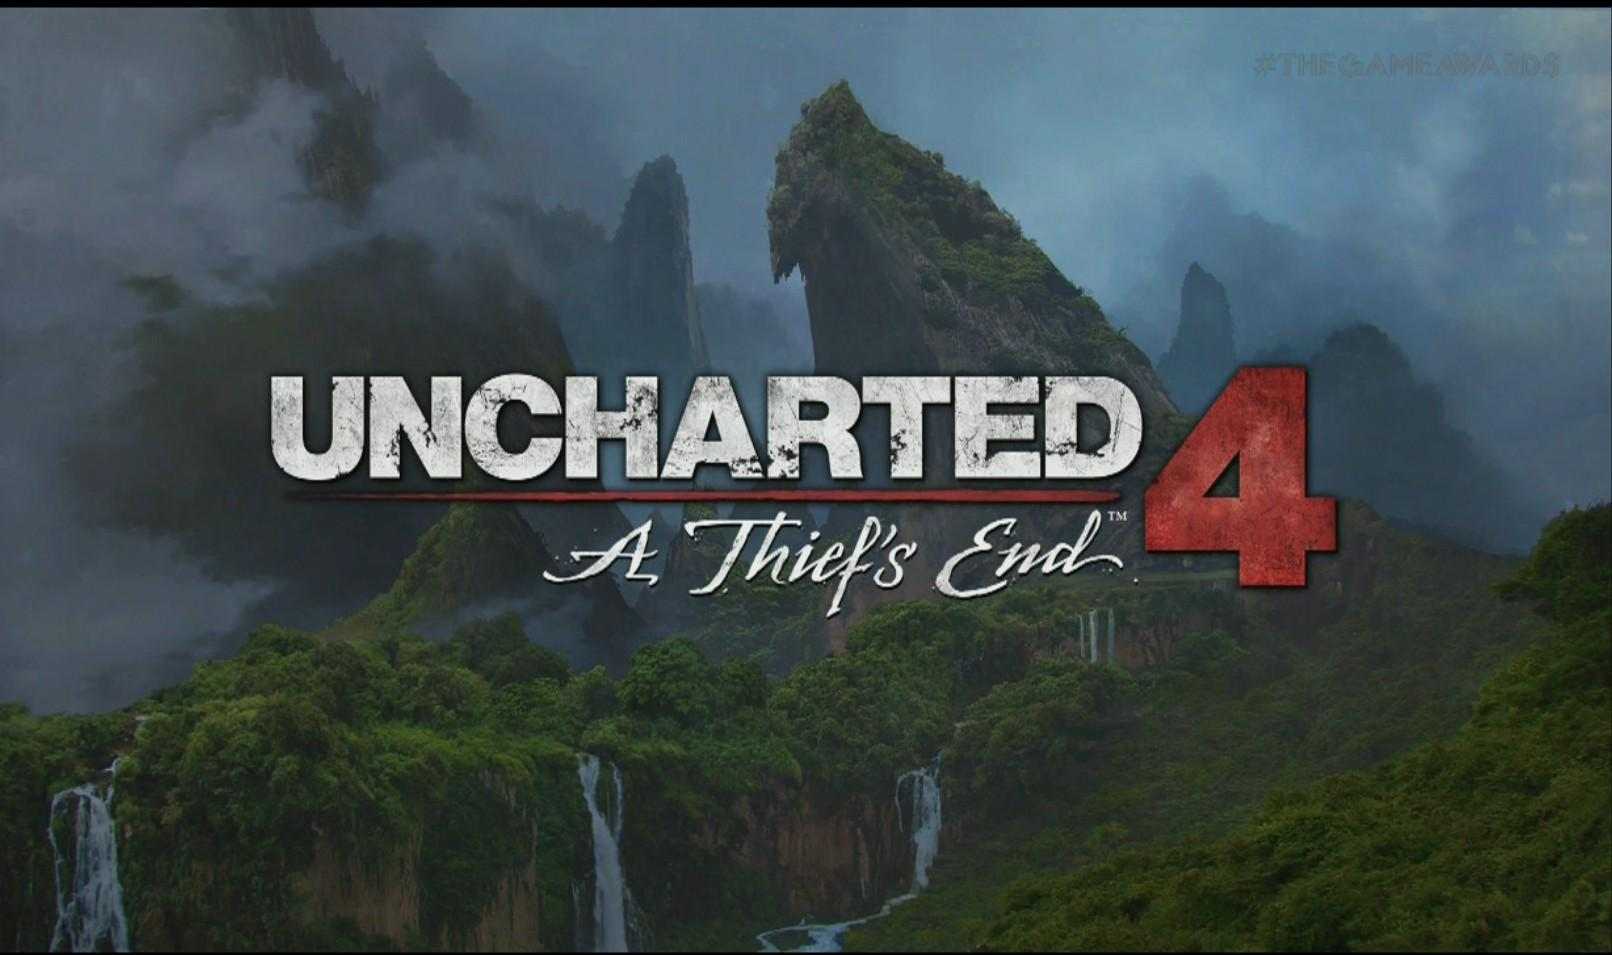 uncharted-4-a-thiefs-end-teaser-the-game-awards-2014.jpg